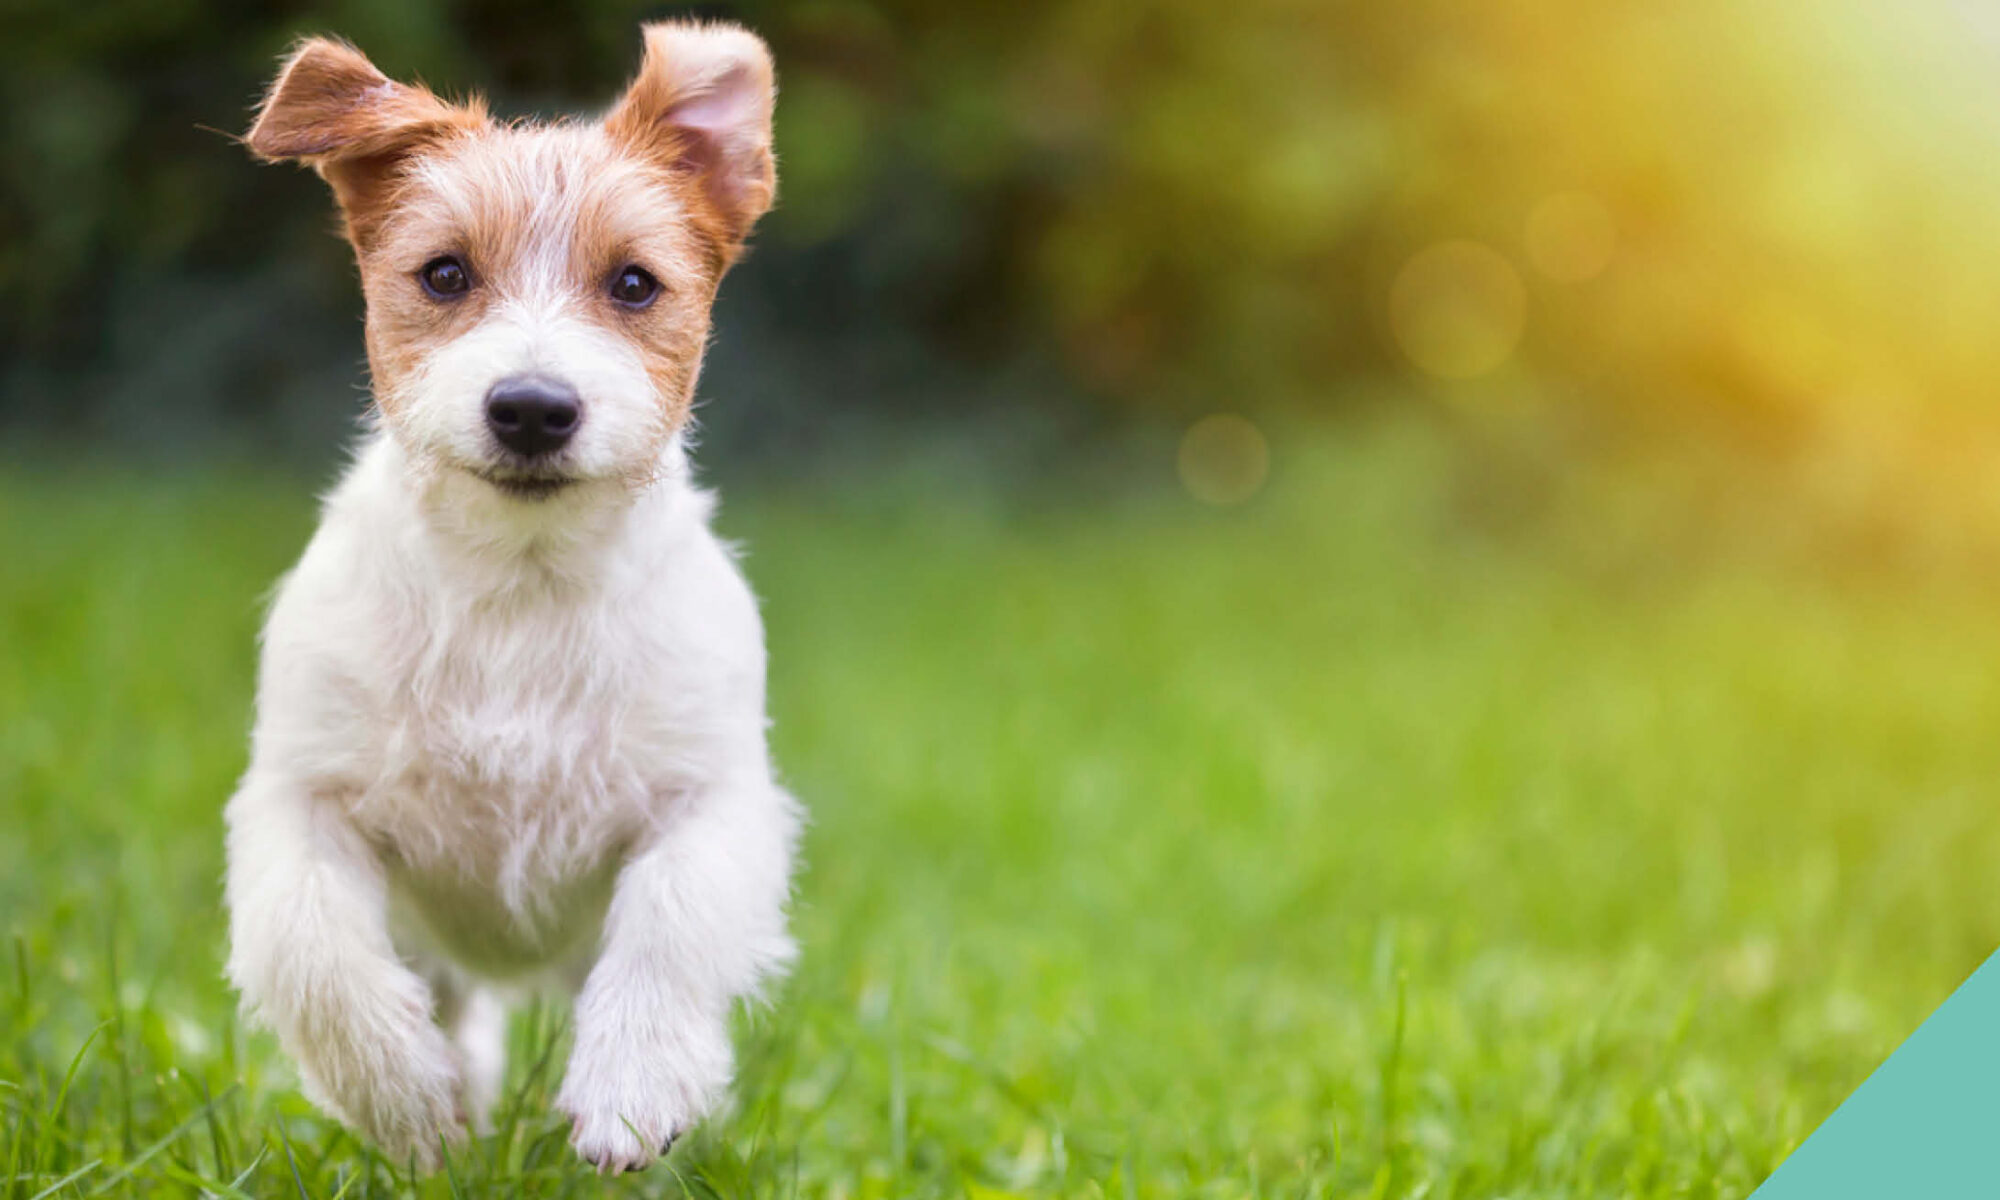 Seven interesting dog facts for you to ponder